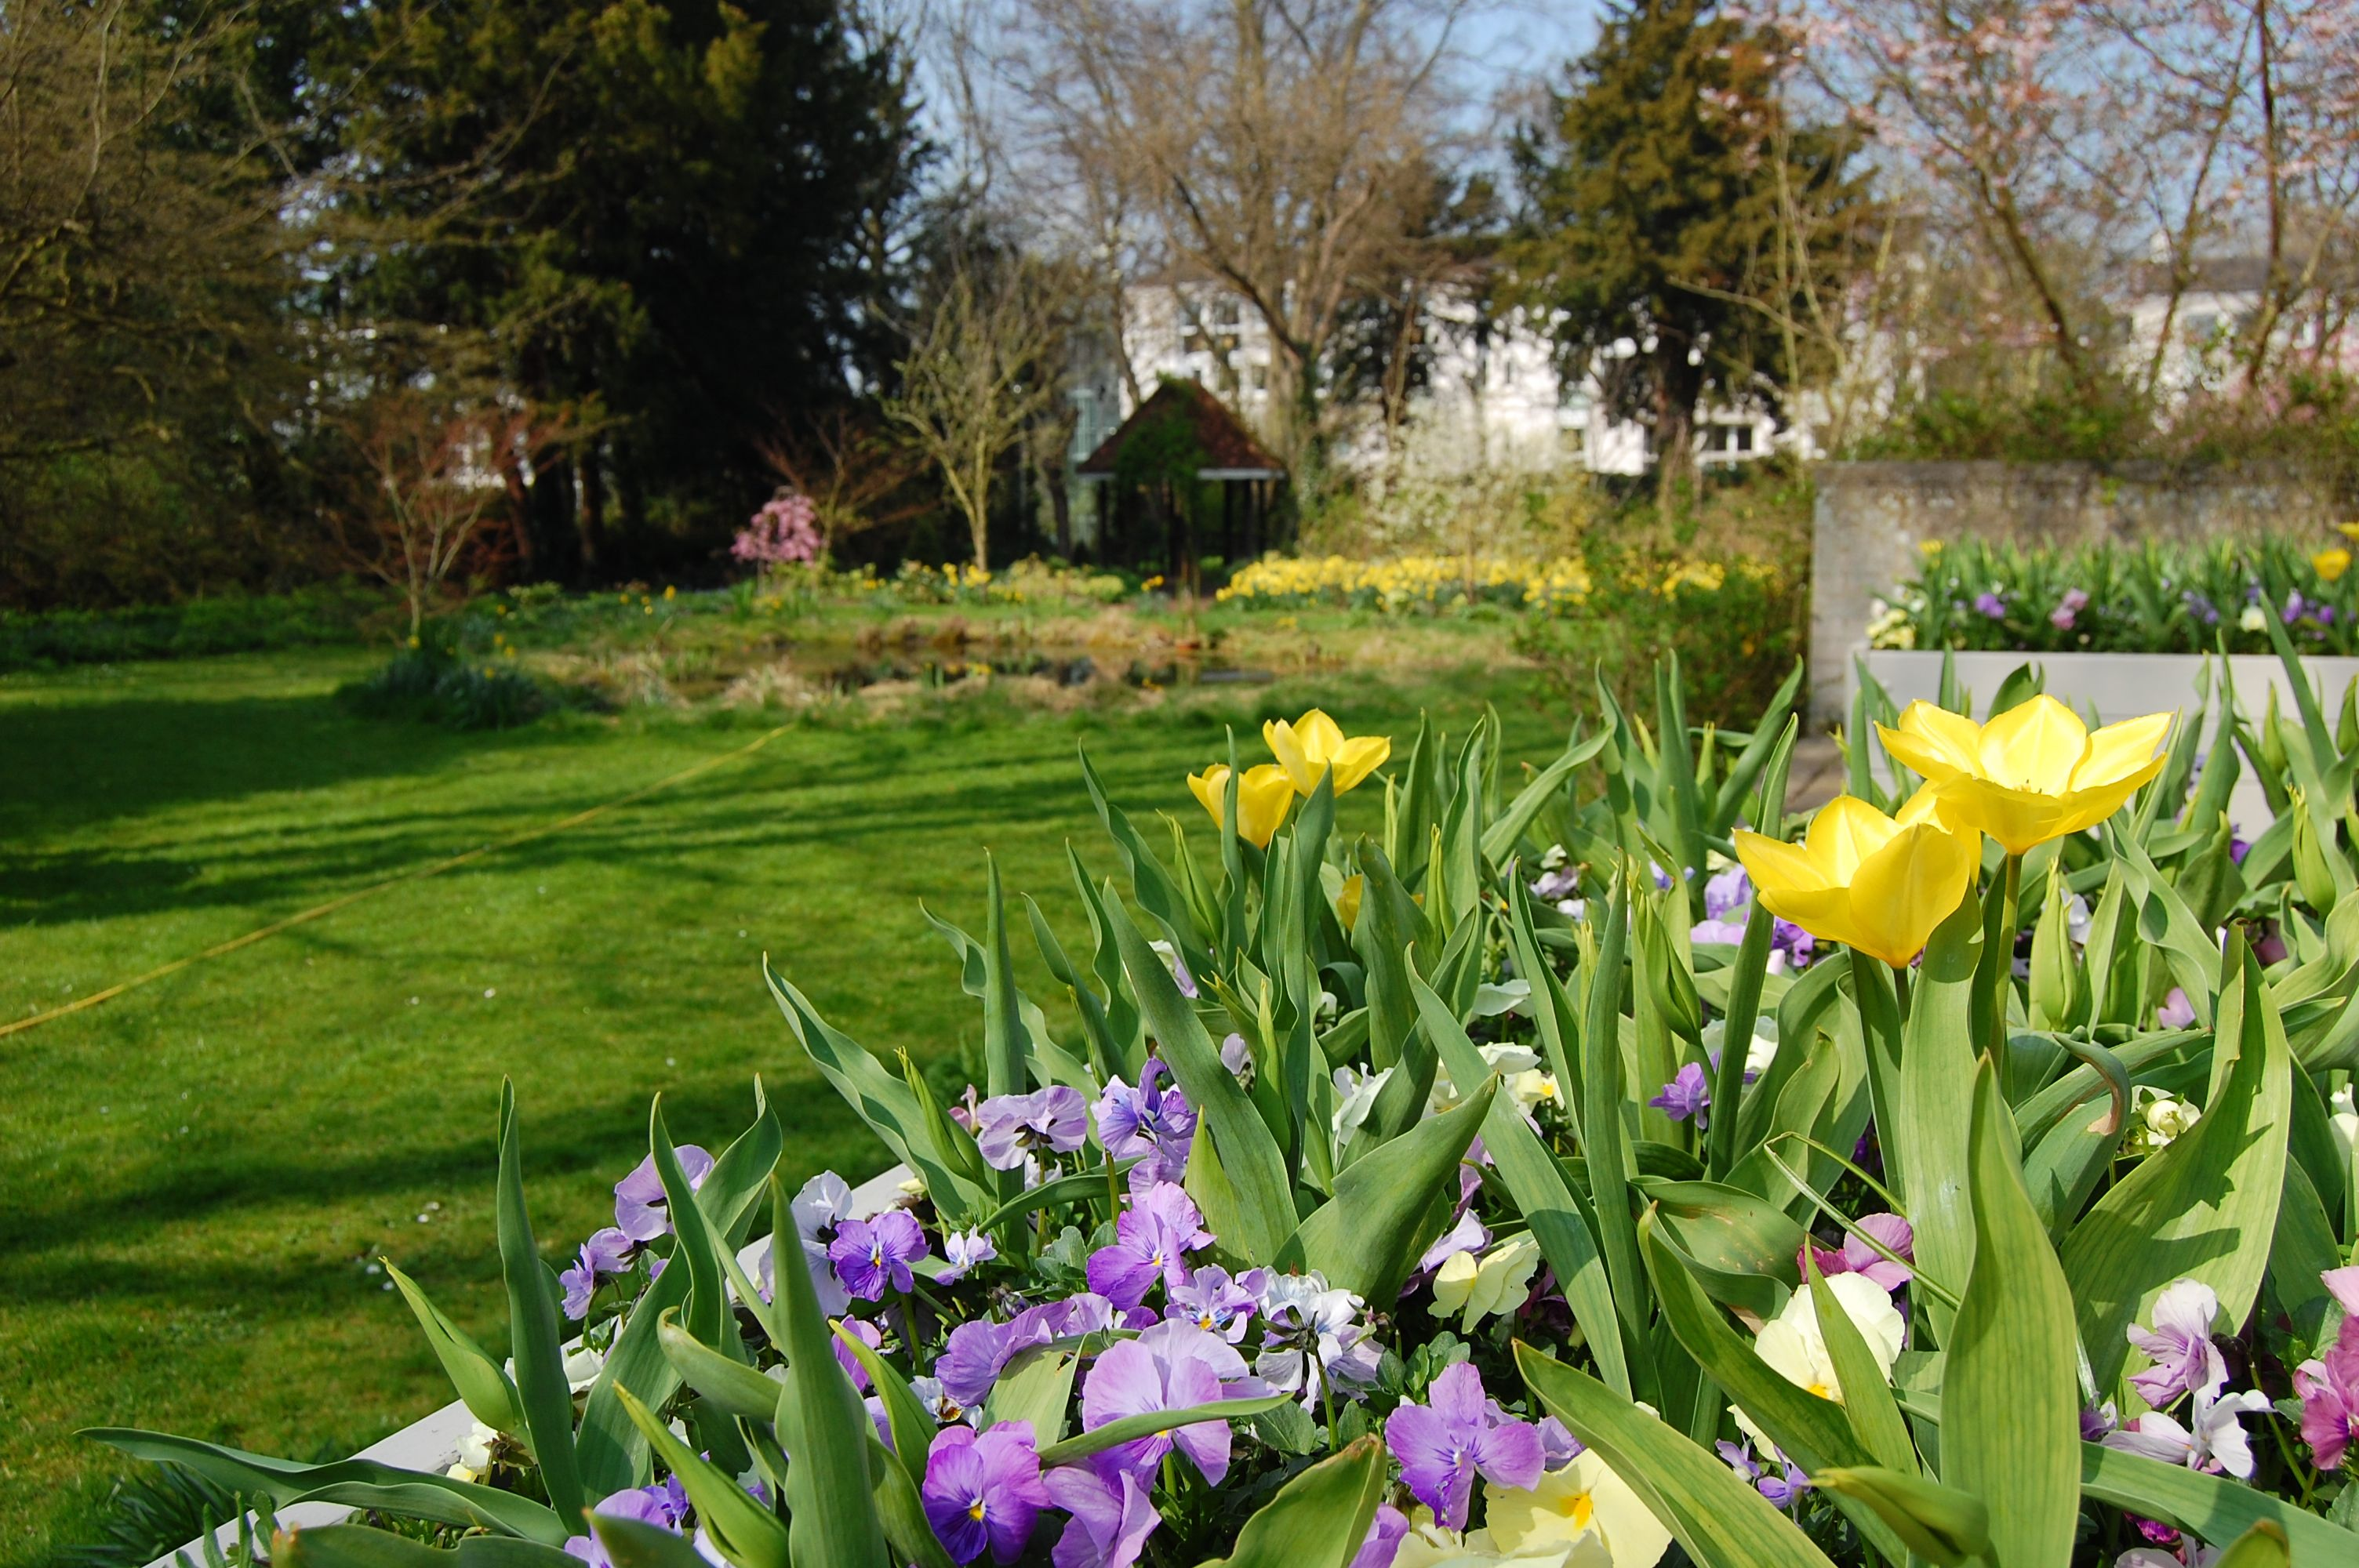 murray edwards college fellows garden featuring bedding plants and